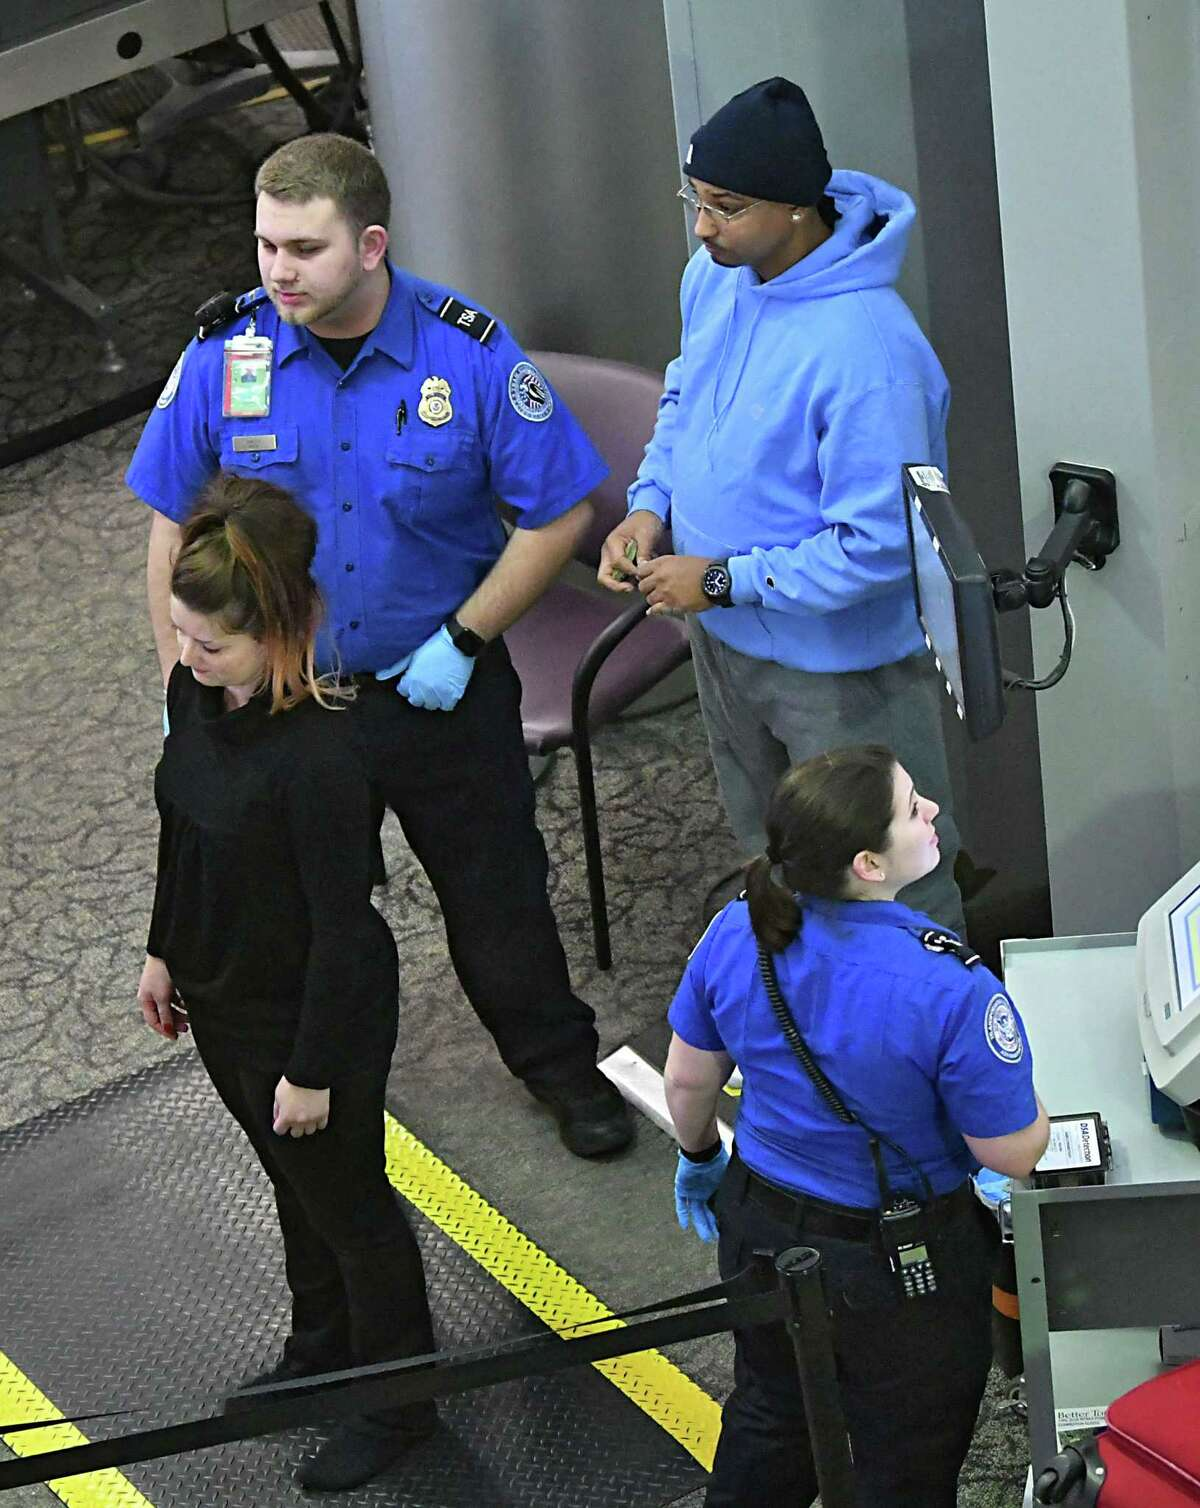 Transportation Security Administration agents check passengers at the security checkpoint at the Albany International Airport on Friday, Dec. 28, 2018 in Colonie, N.Y. (Lori Van Buren/Times Union)